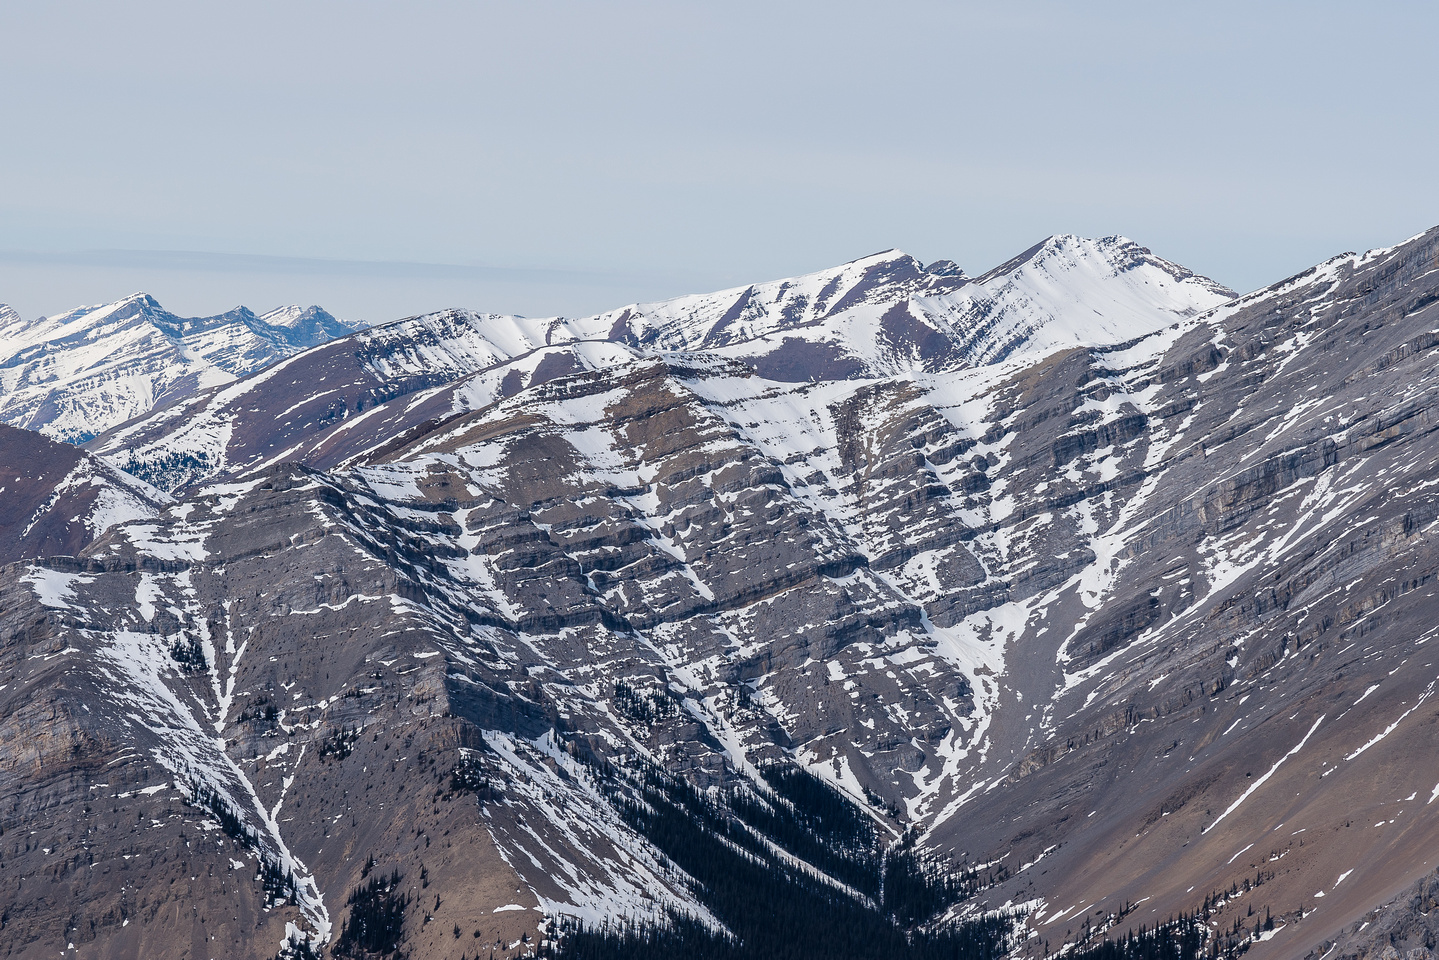 Views towards Mount White (R).